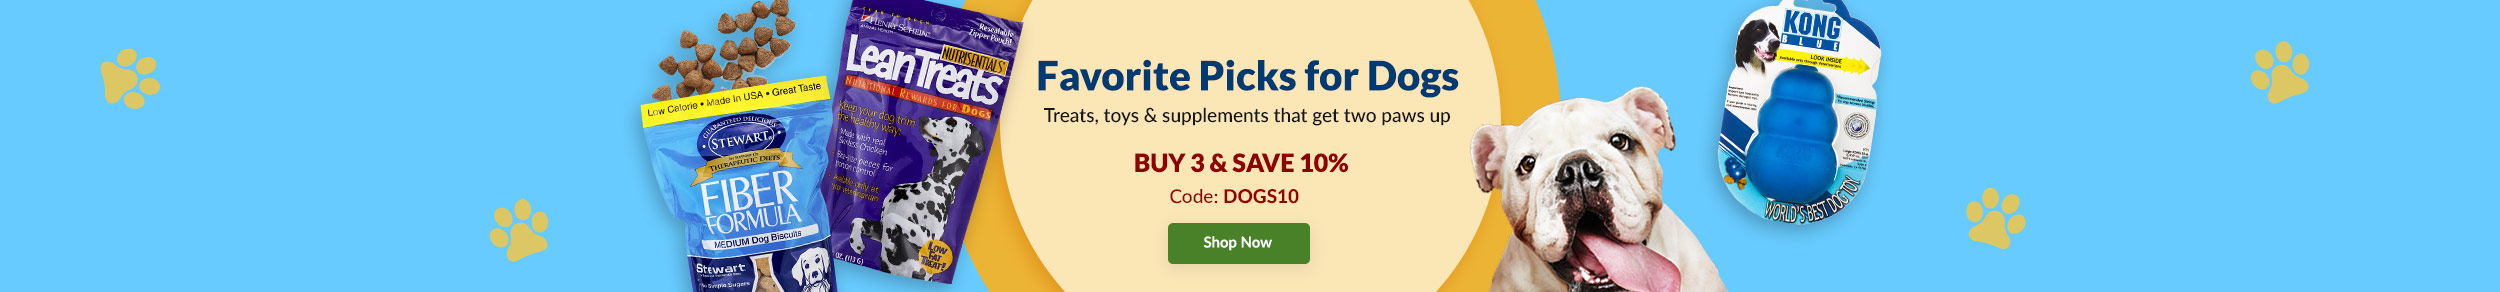 Favorite Picks For Dogs - Treats, toys & supplements to keep them happy. Buy 3 & Save 10%, CODE DOGS10